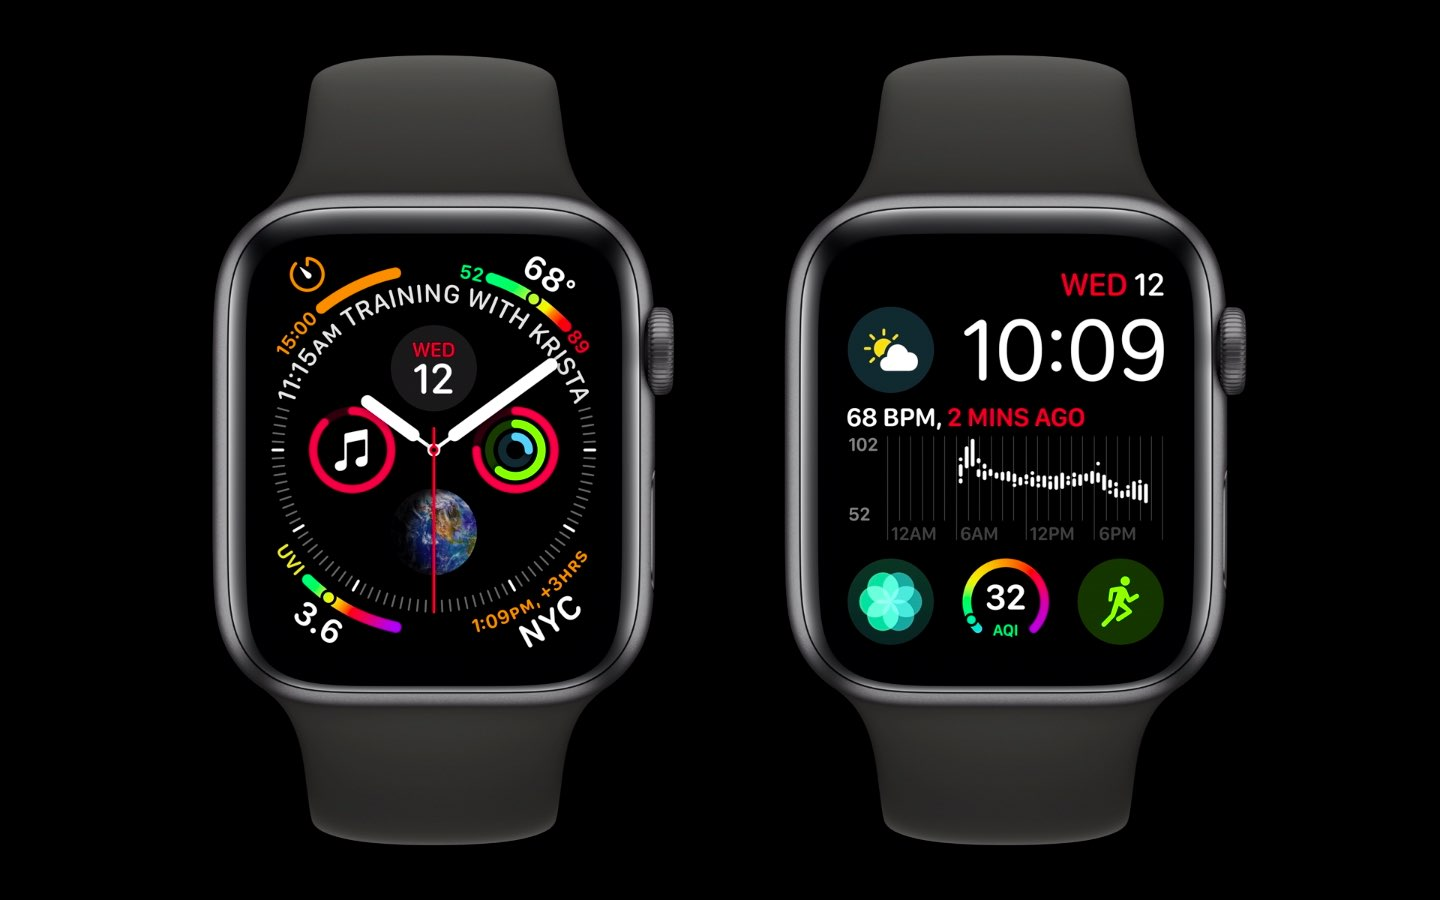 Apple Watch bug stemming from daylight saving time is affecting battery life, some users in Australia report